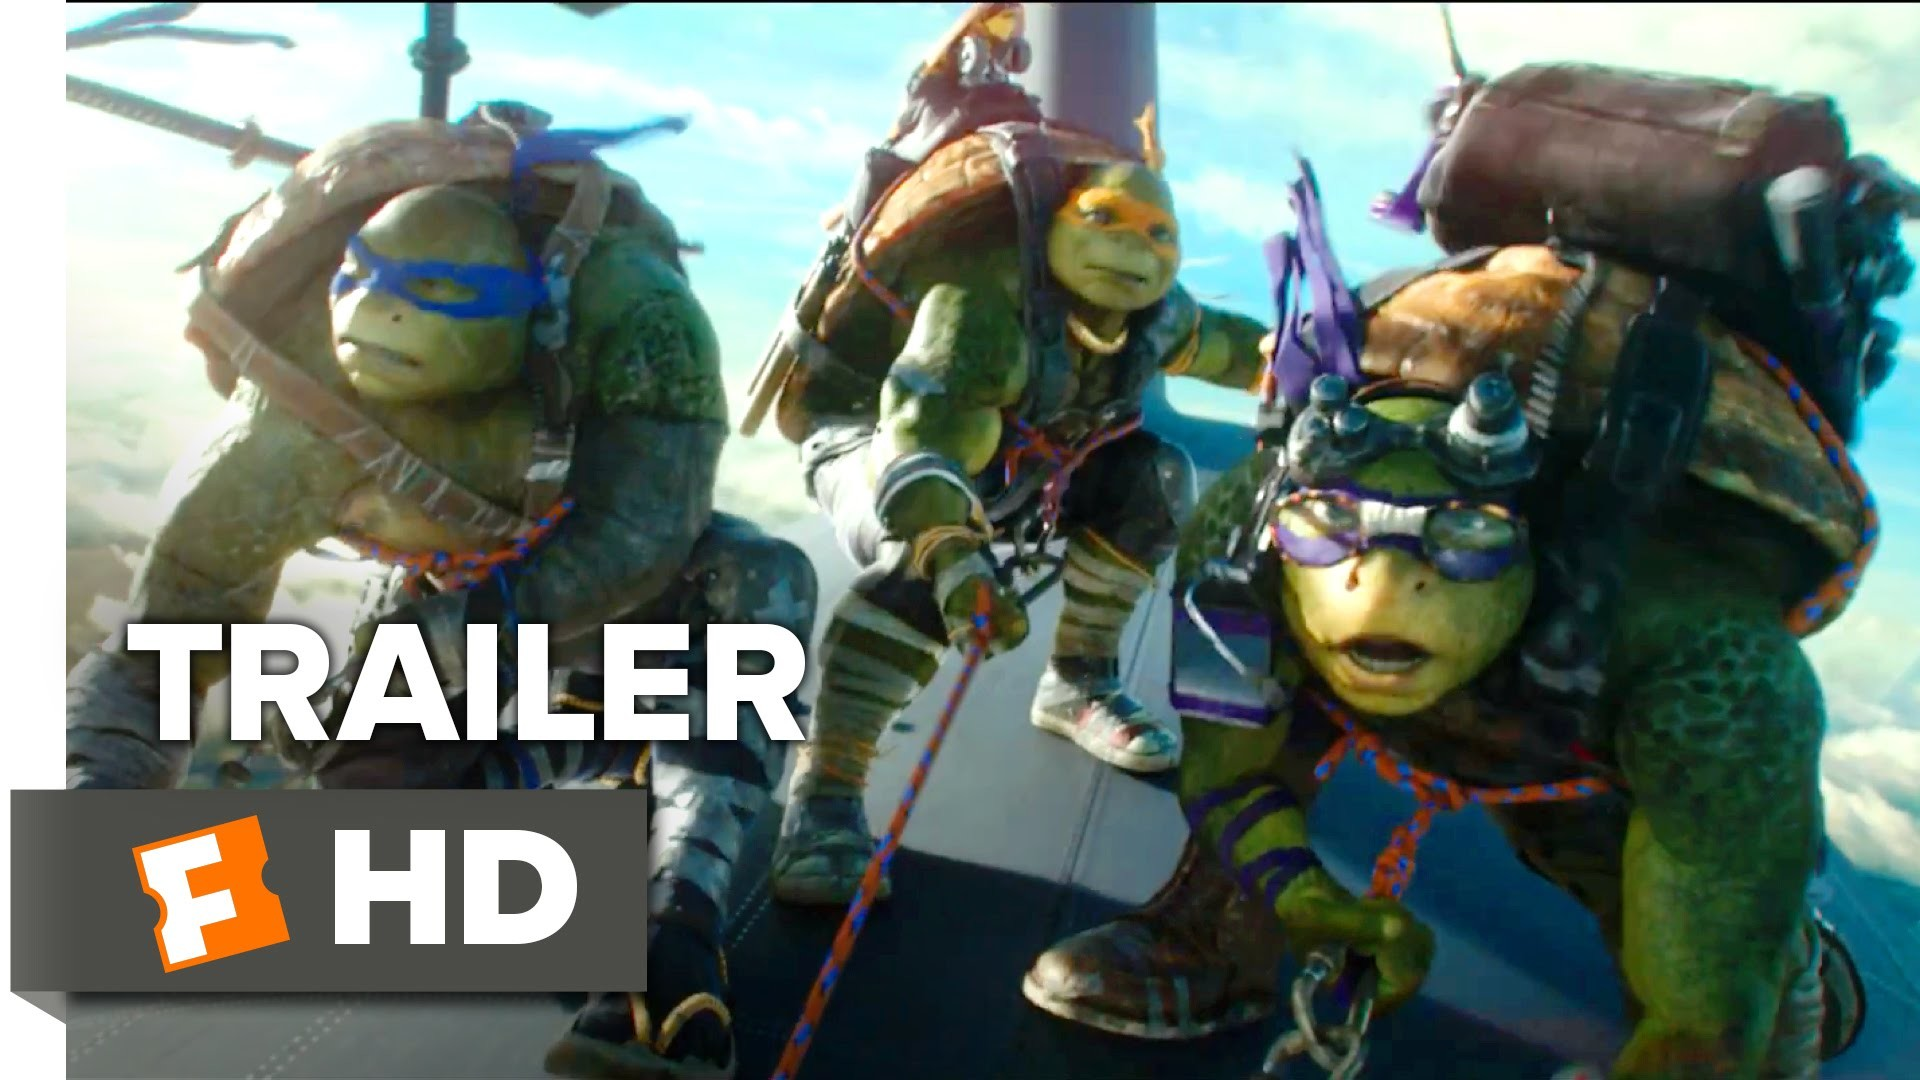 1920x1080 Teenage Mutant Ninja Turtles: Out of the Shadows Official Trailer #4 (2016)  - Movie HD - YouTube